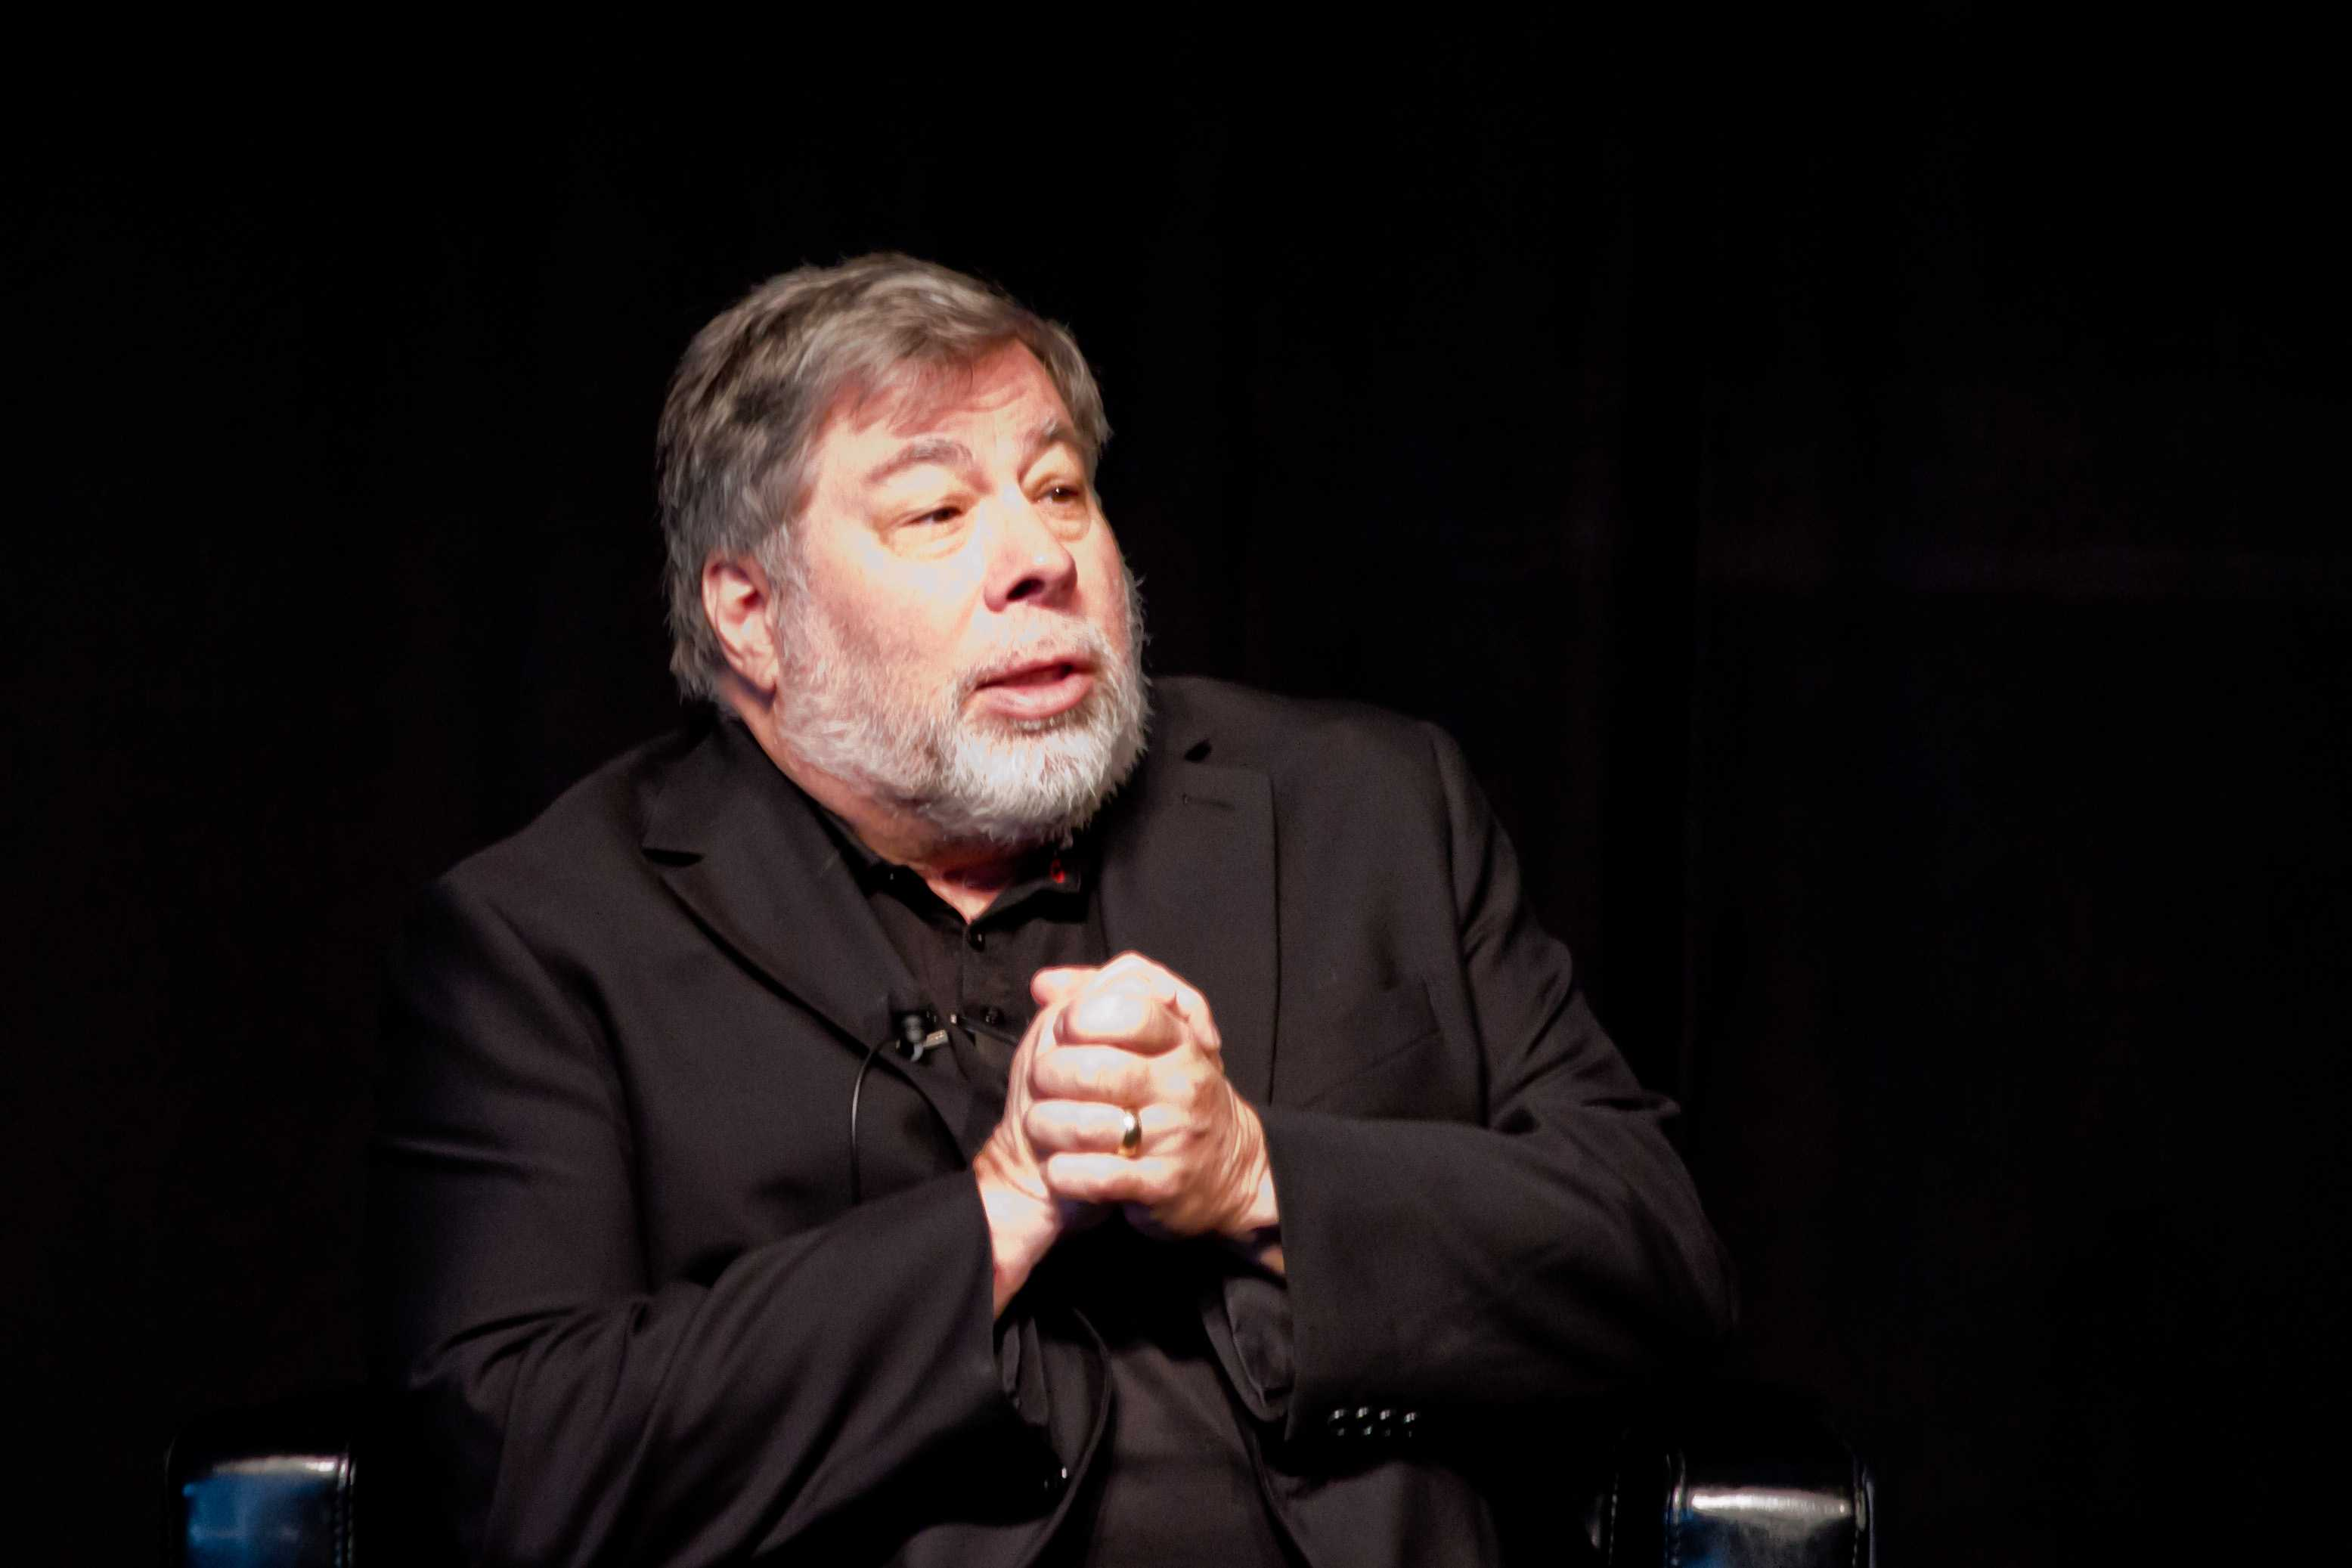 Apple co-founder Steve Wozniak spoke to students about embracing creativity.